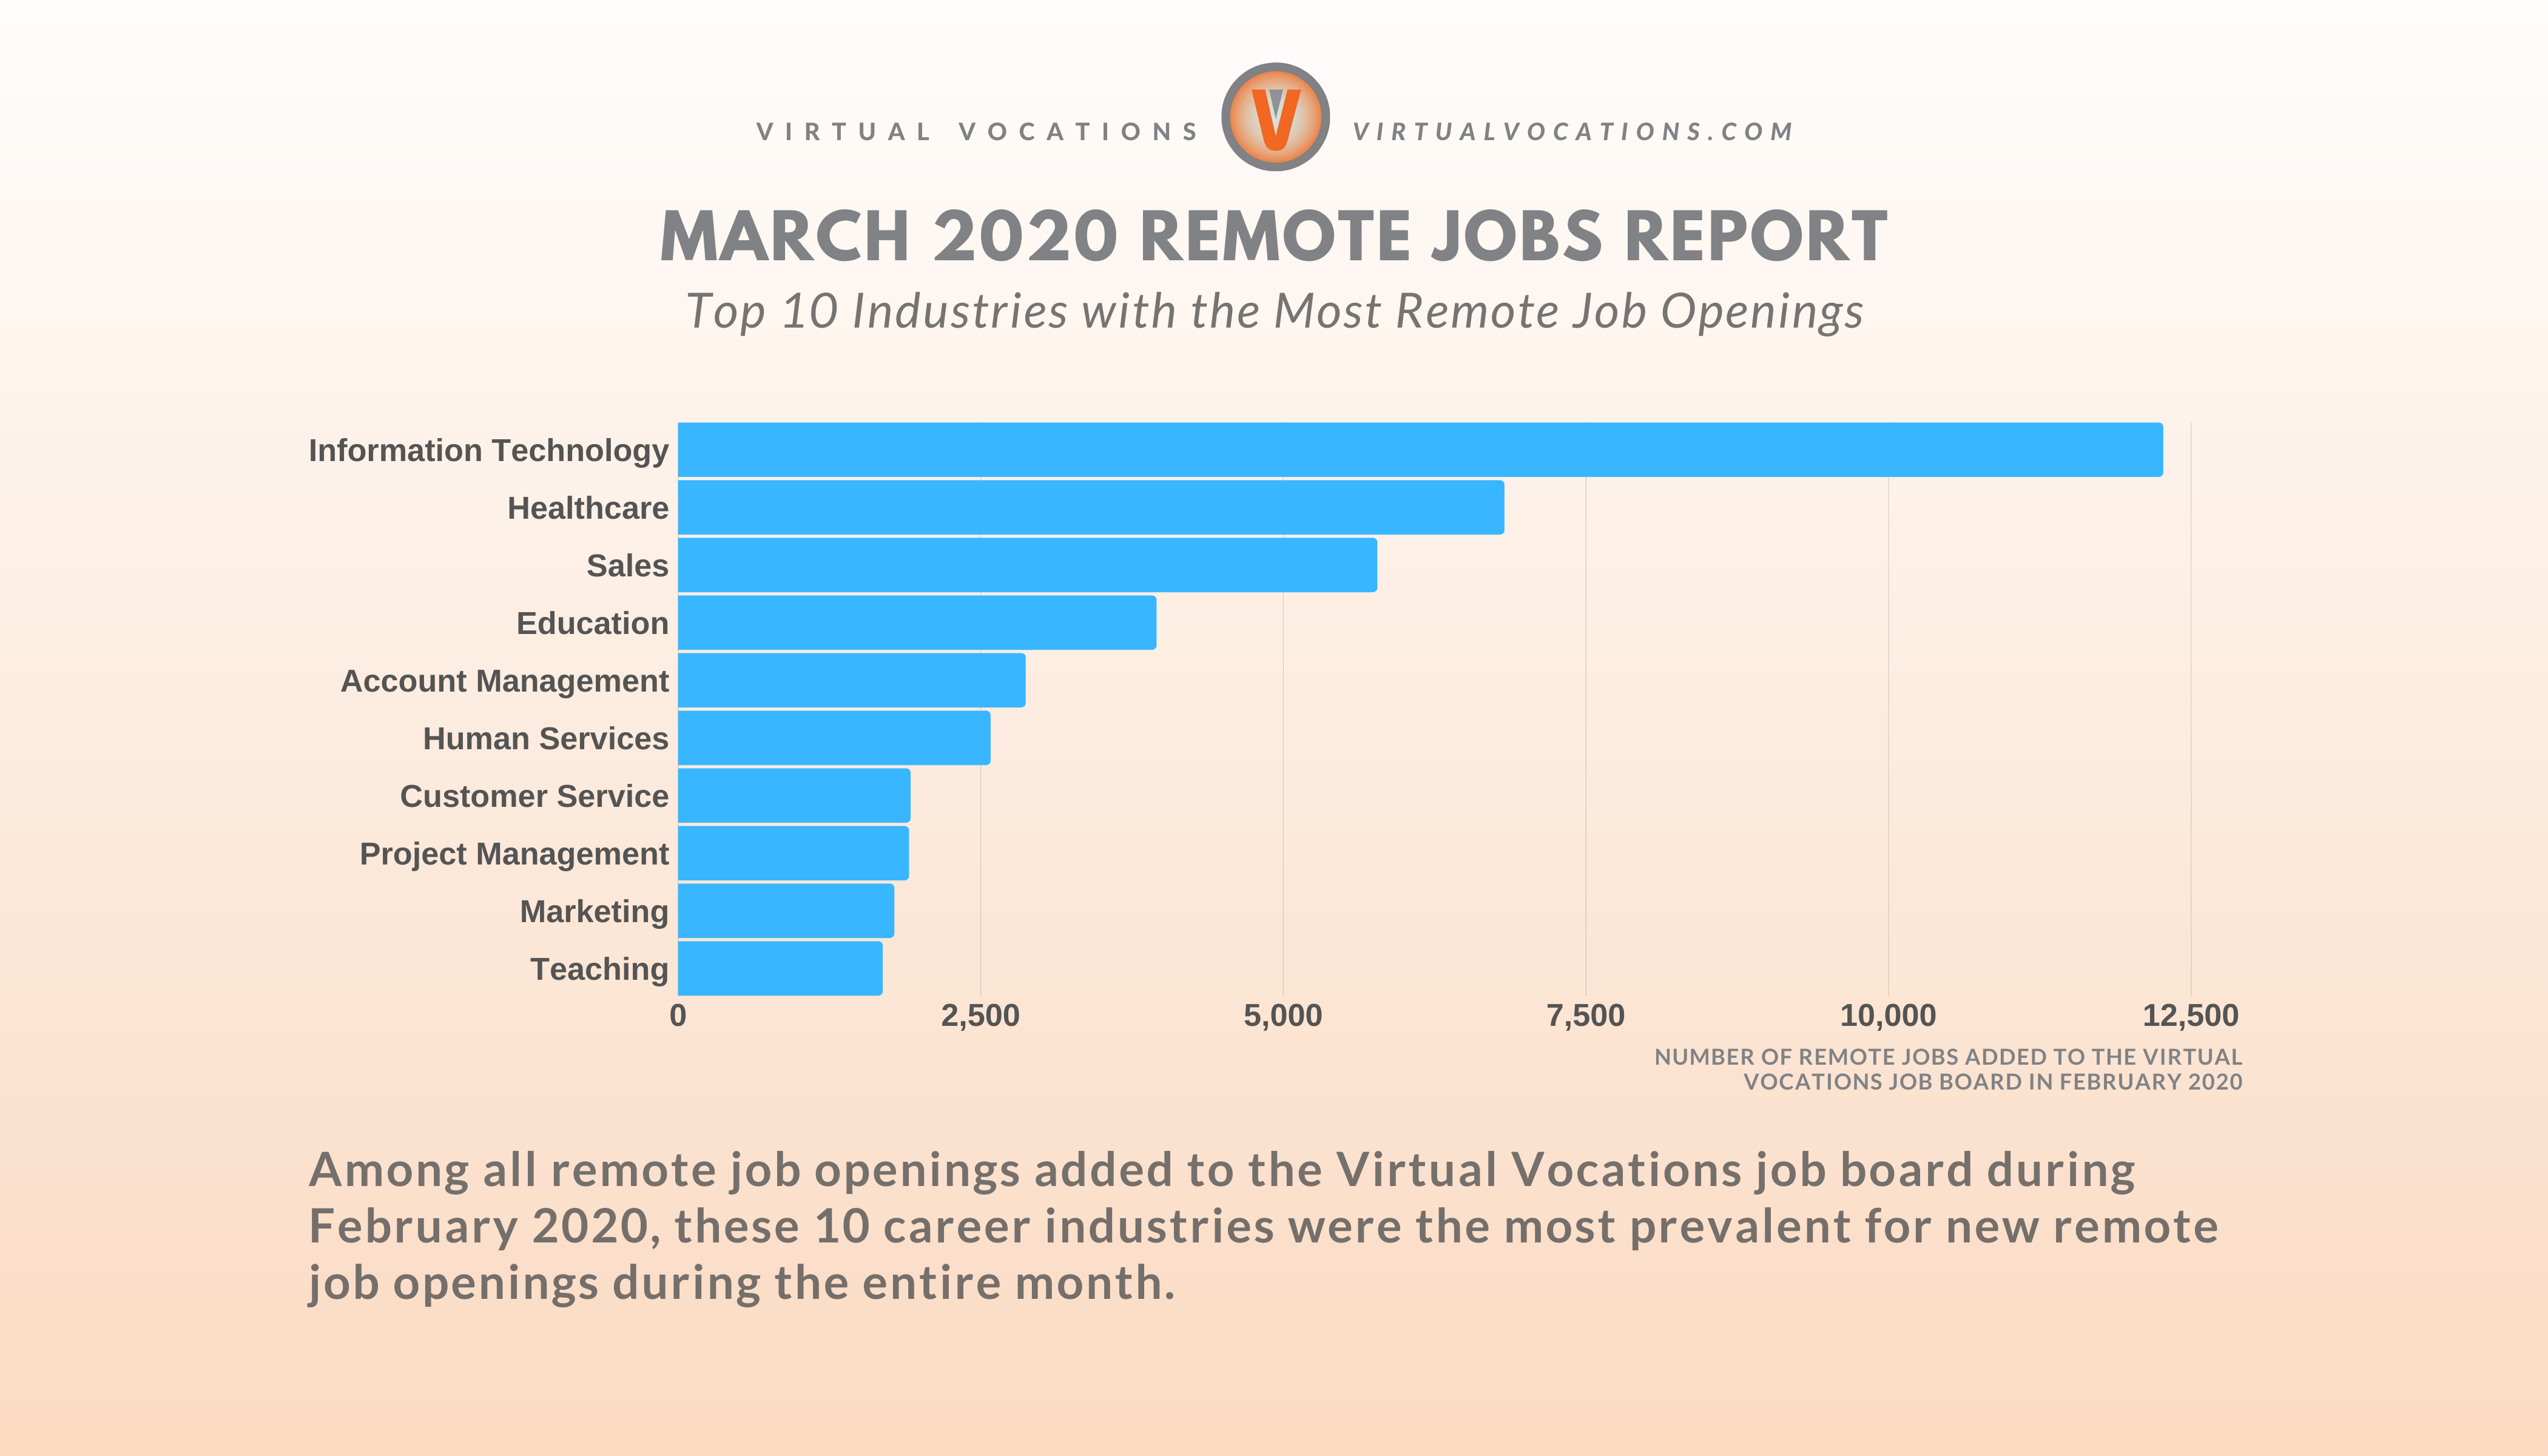 March 2020 Remote Jobs Report - Top 10 Industries with the Most Remote Job Openings - Virtual Vocations